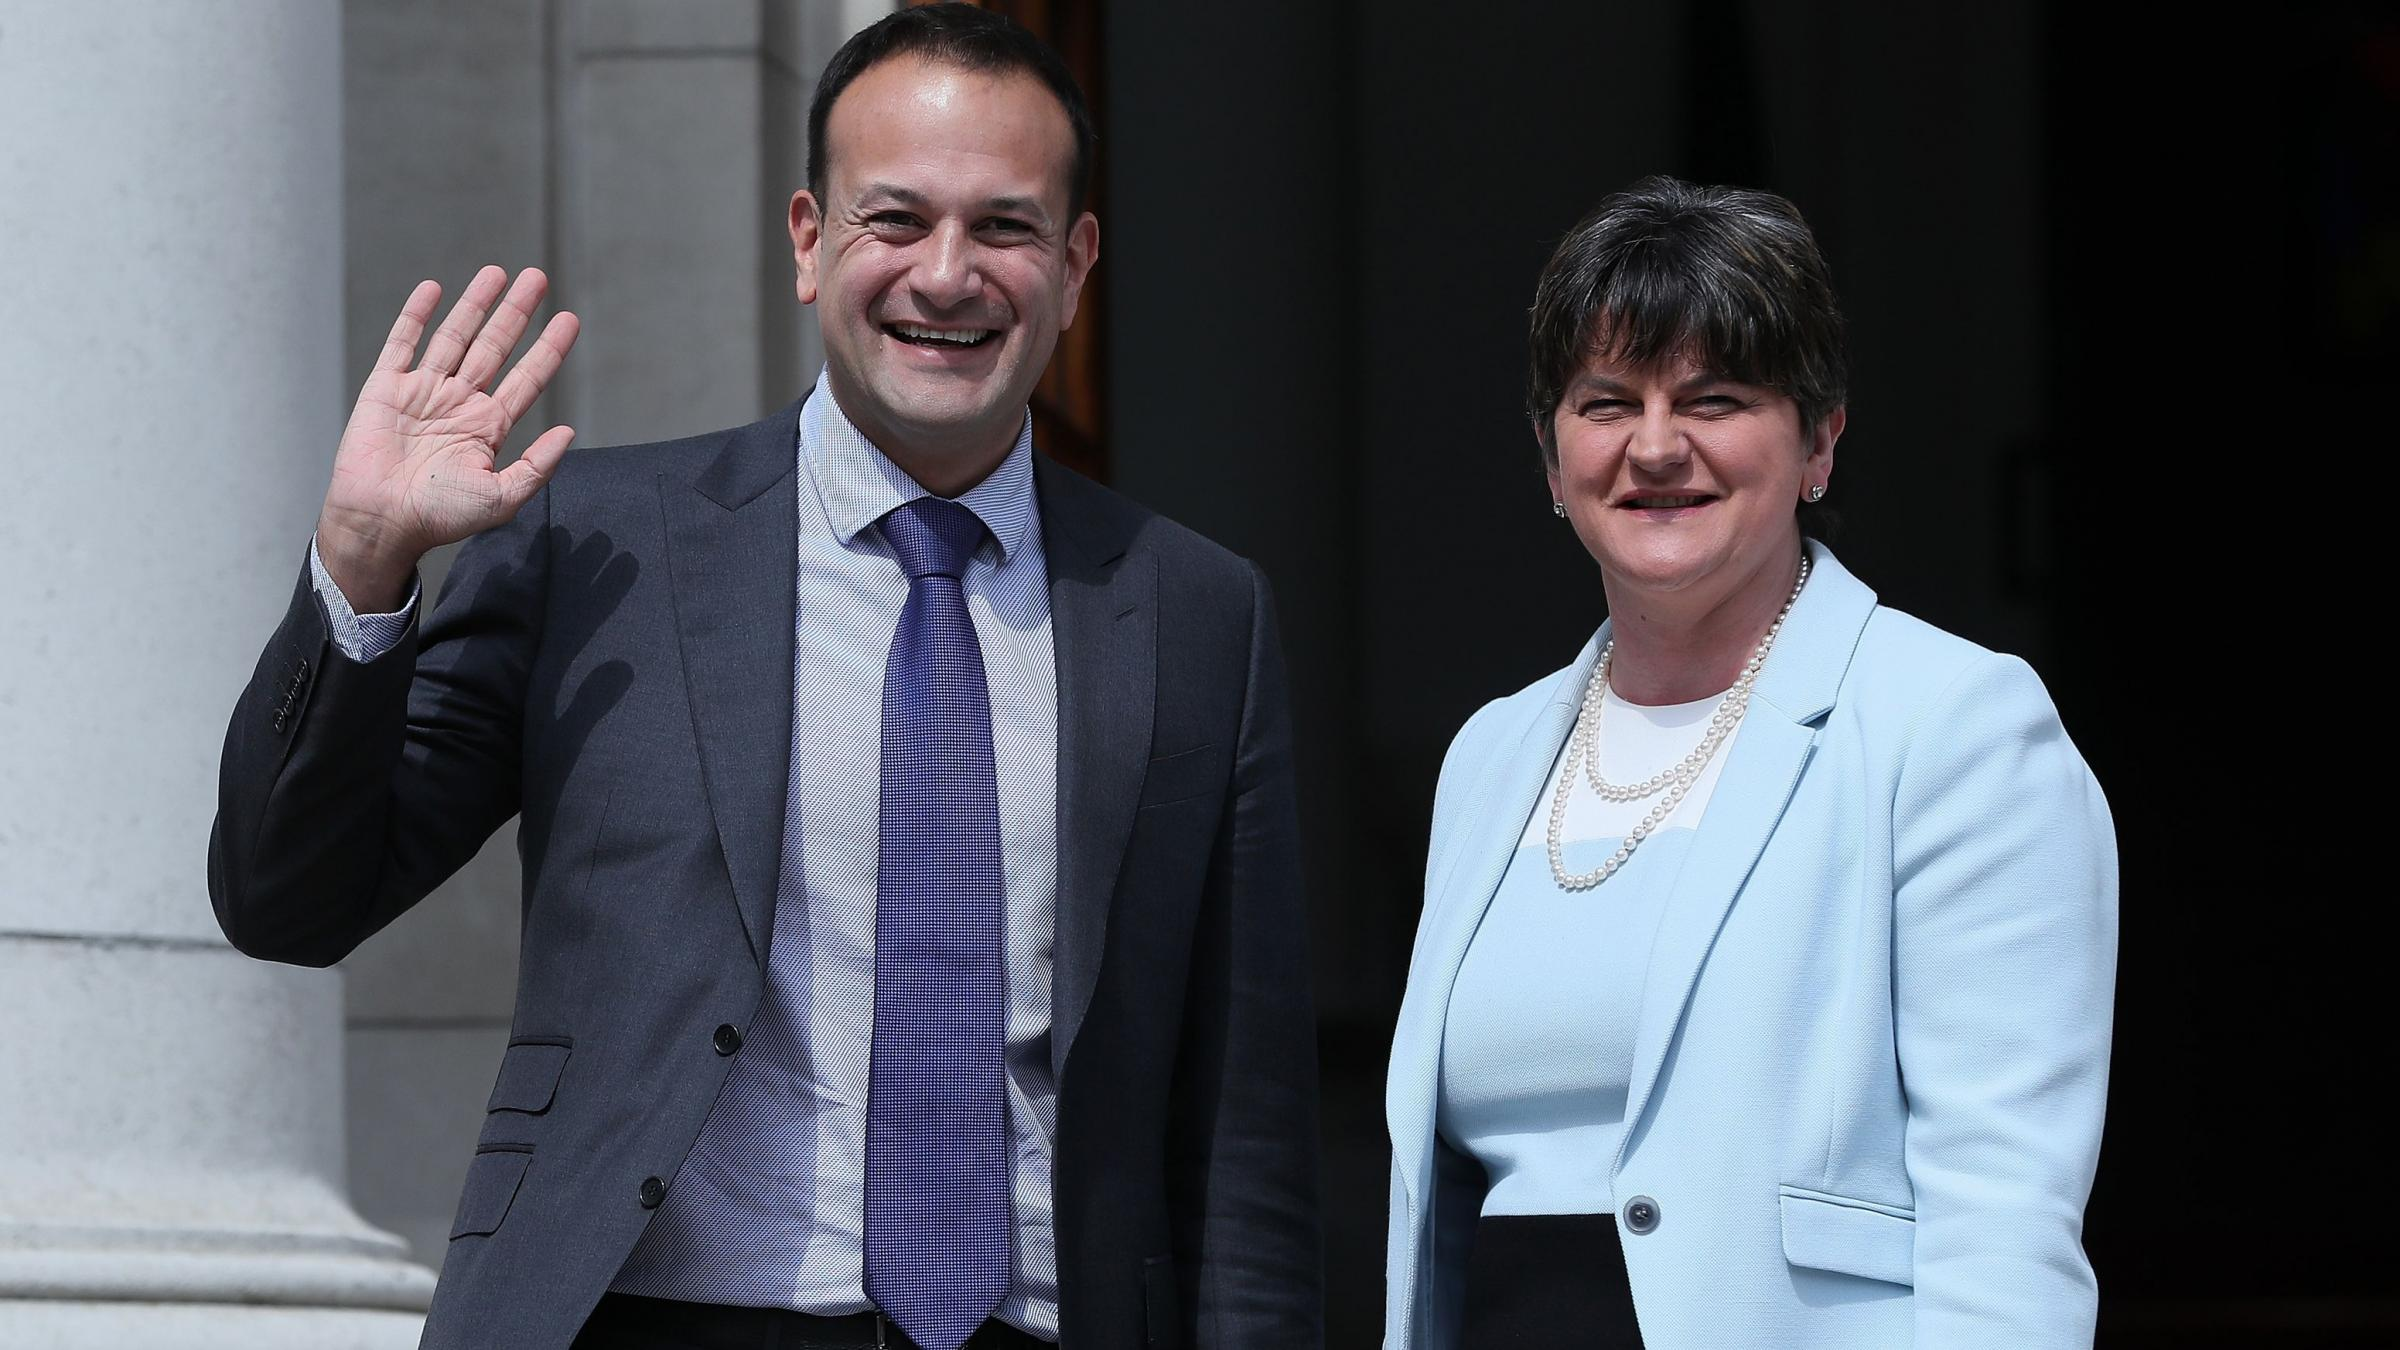 Taoiseach to meet DUP, Sinn Féin delegations separately in Dublin